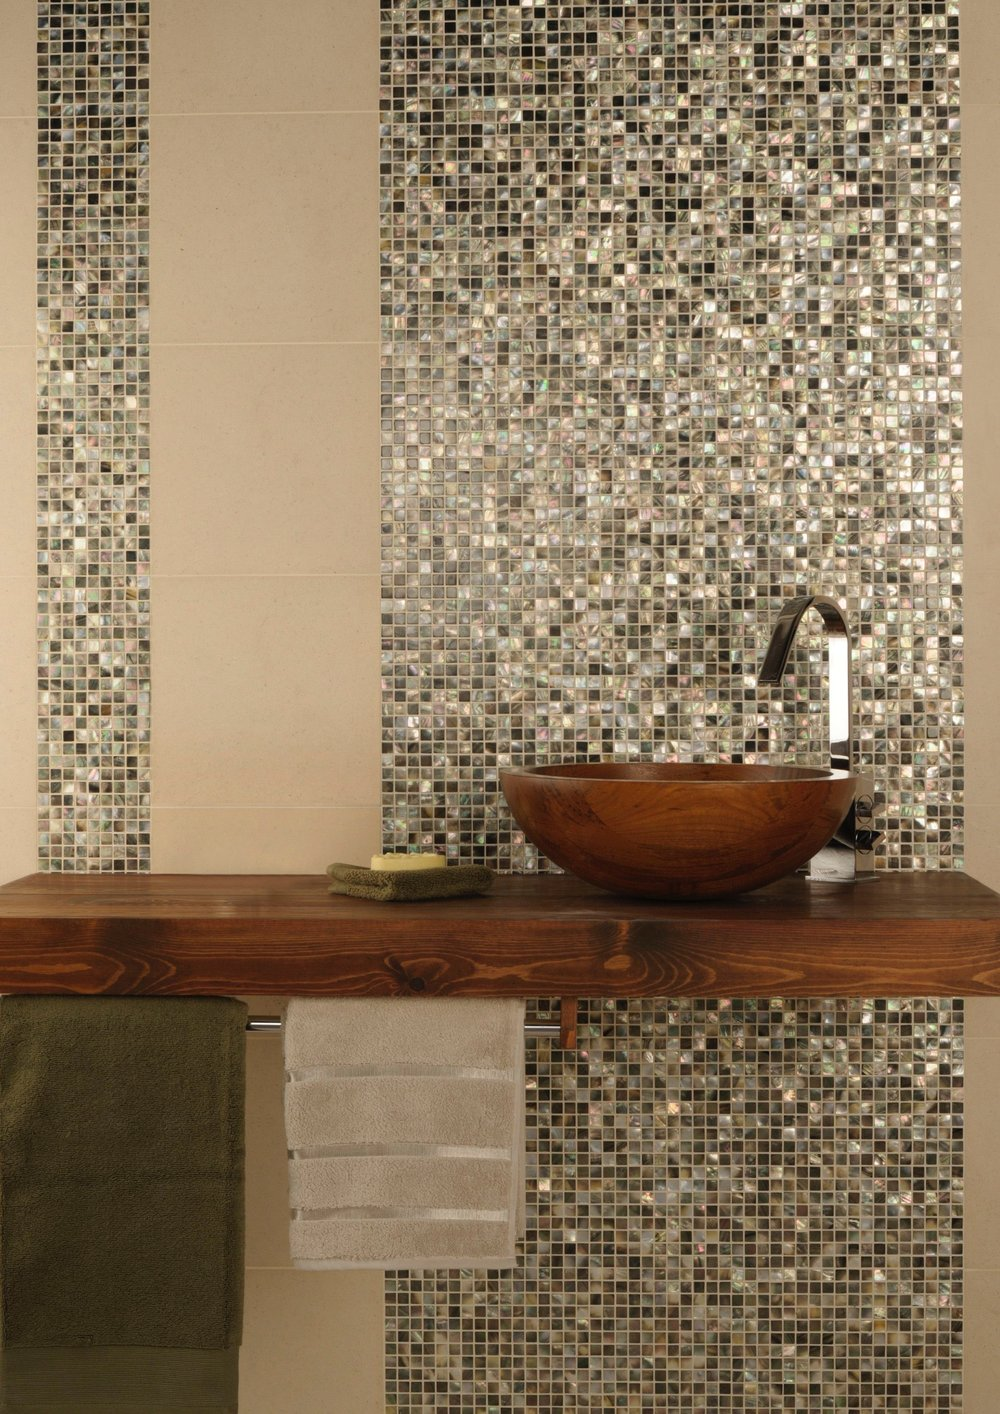 Original Style_Mosaics_GW-PARMOS Mother of Pearl no mirror -.jpg